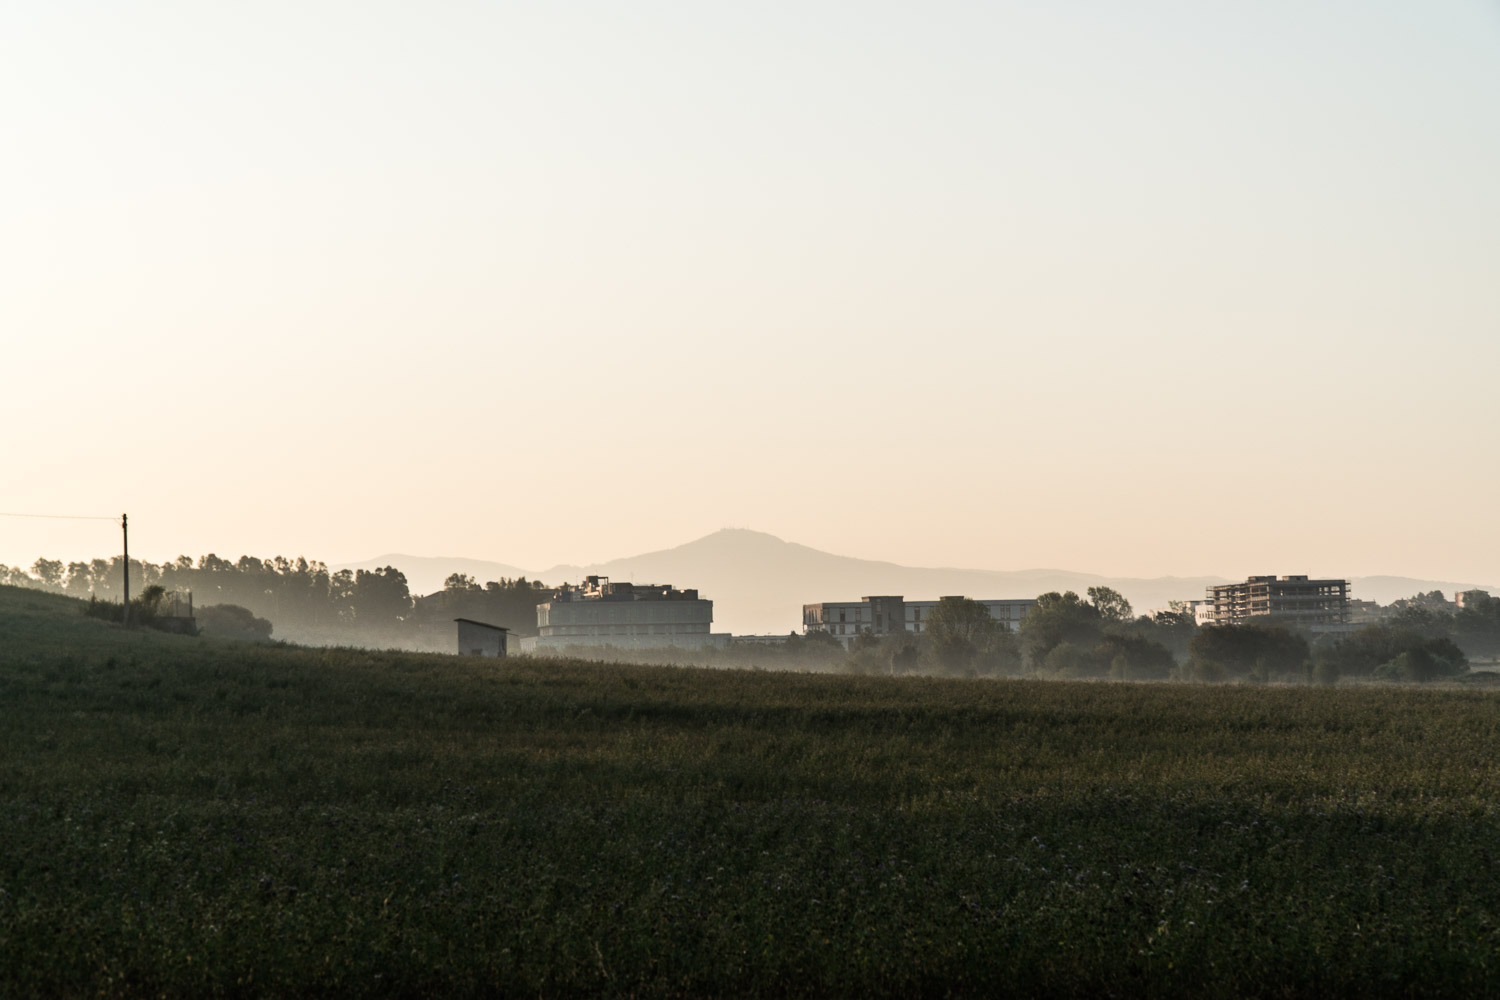 Monte Cavo rises from the mist of the dawn and the Roman suburbs housing